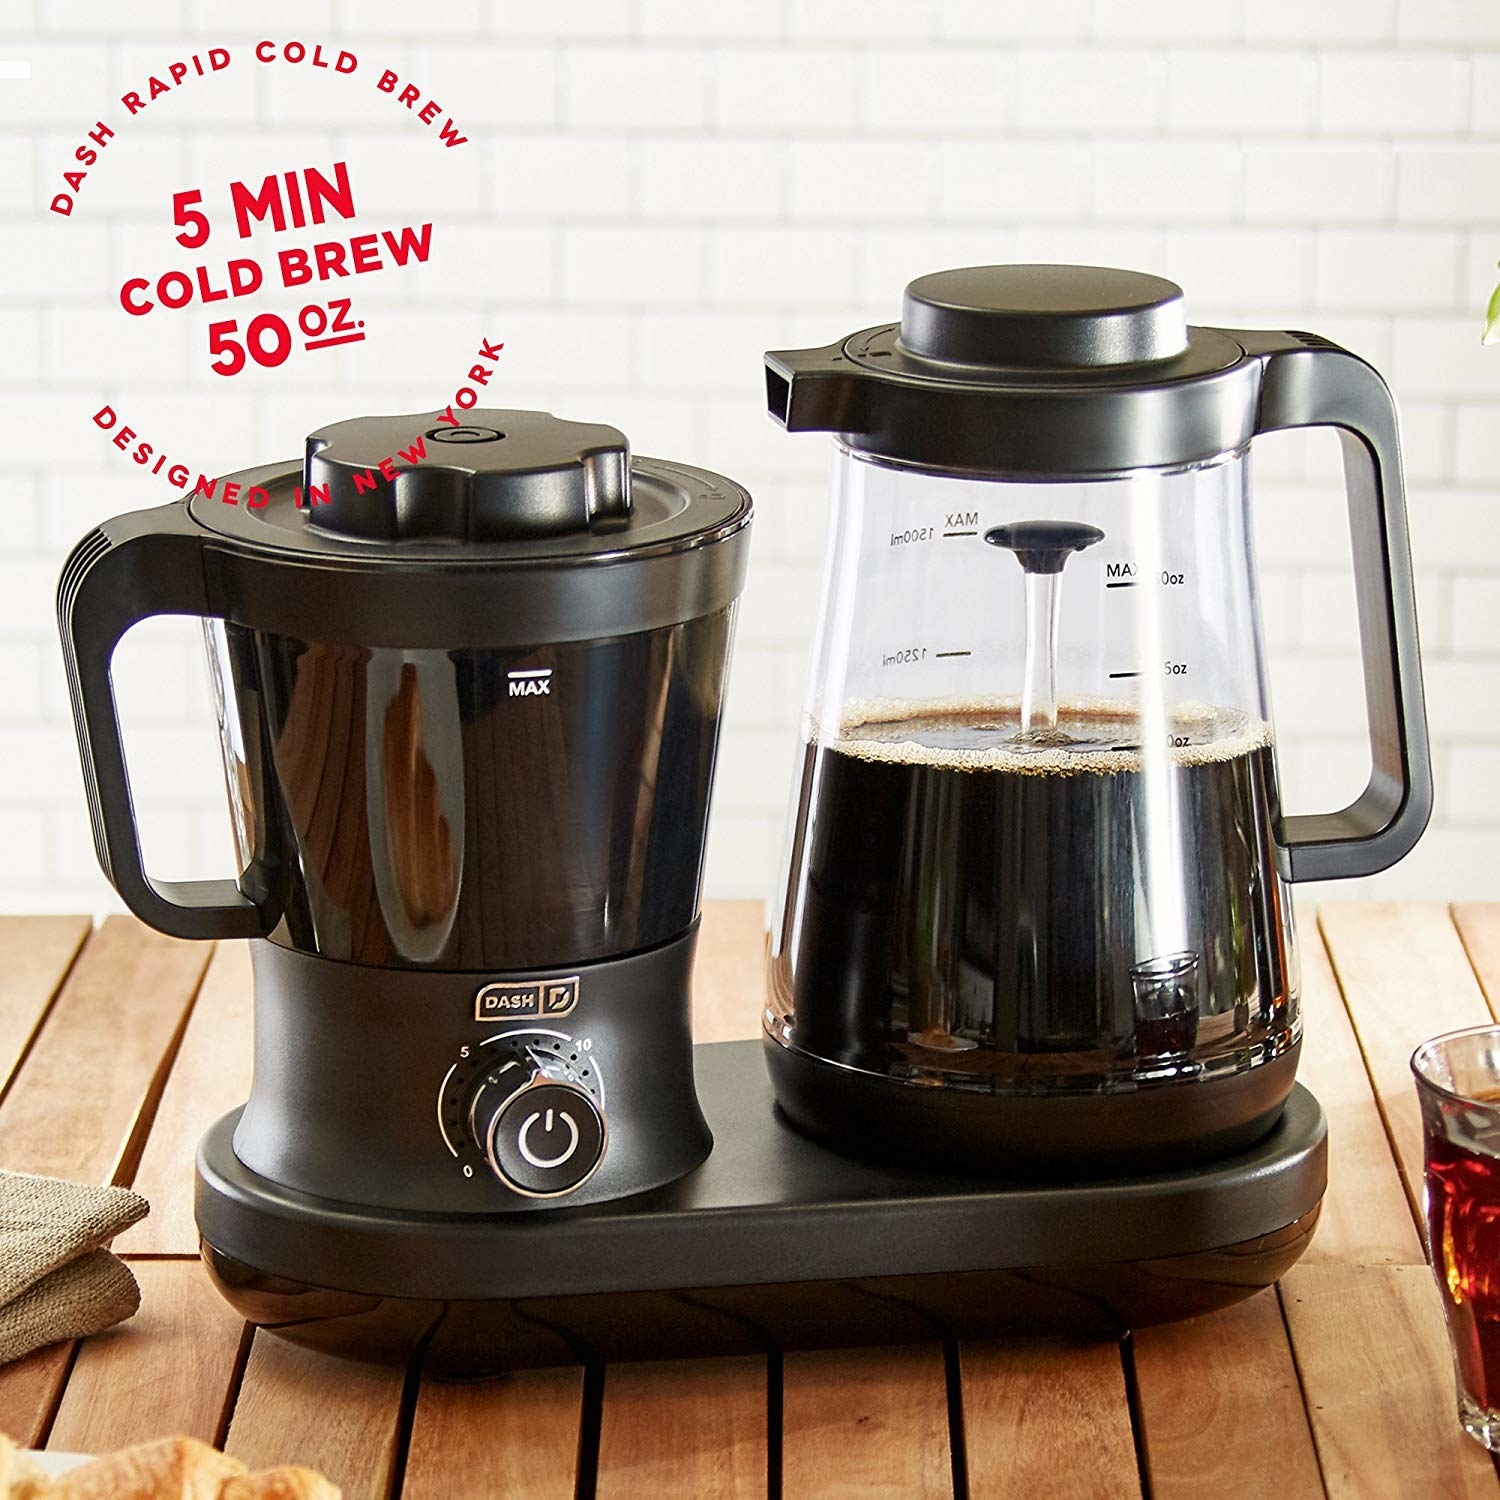 The five minute rapid cold brew maker, that makes up to 50 ounces of coffee, with a pitcher, coffee maker with dial